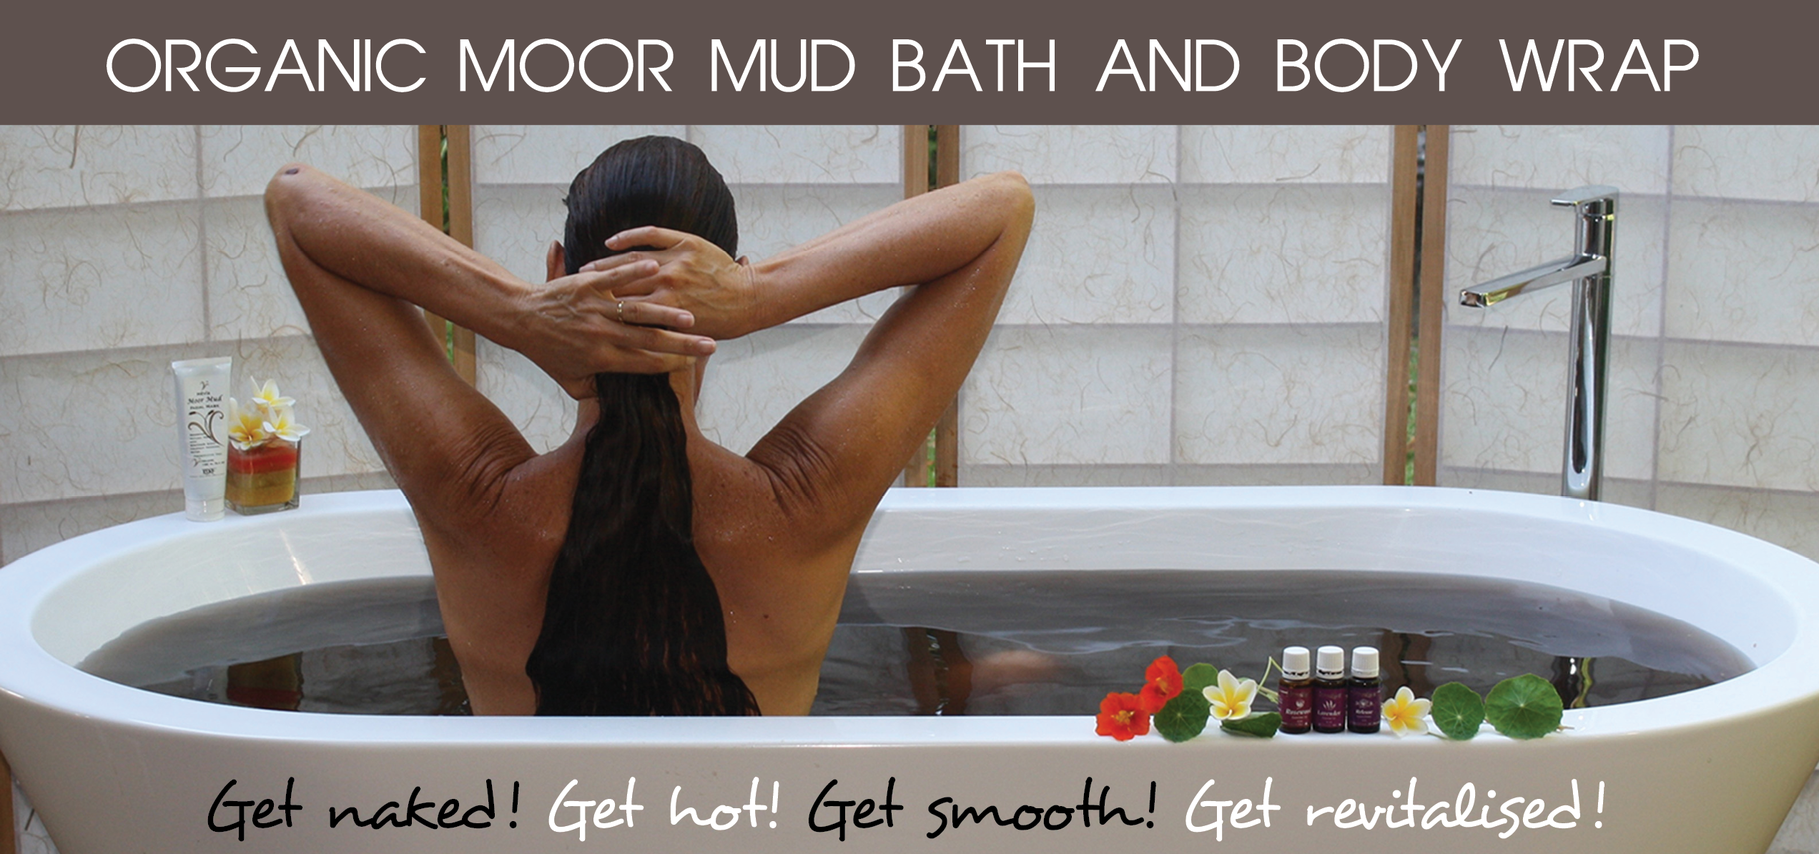 BUY RYL Moor Mud Bath & Body Scrub